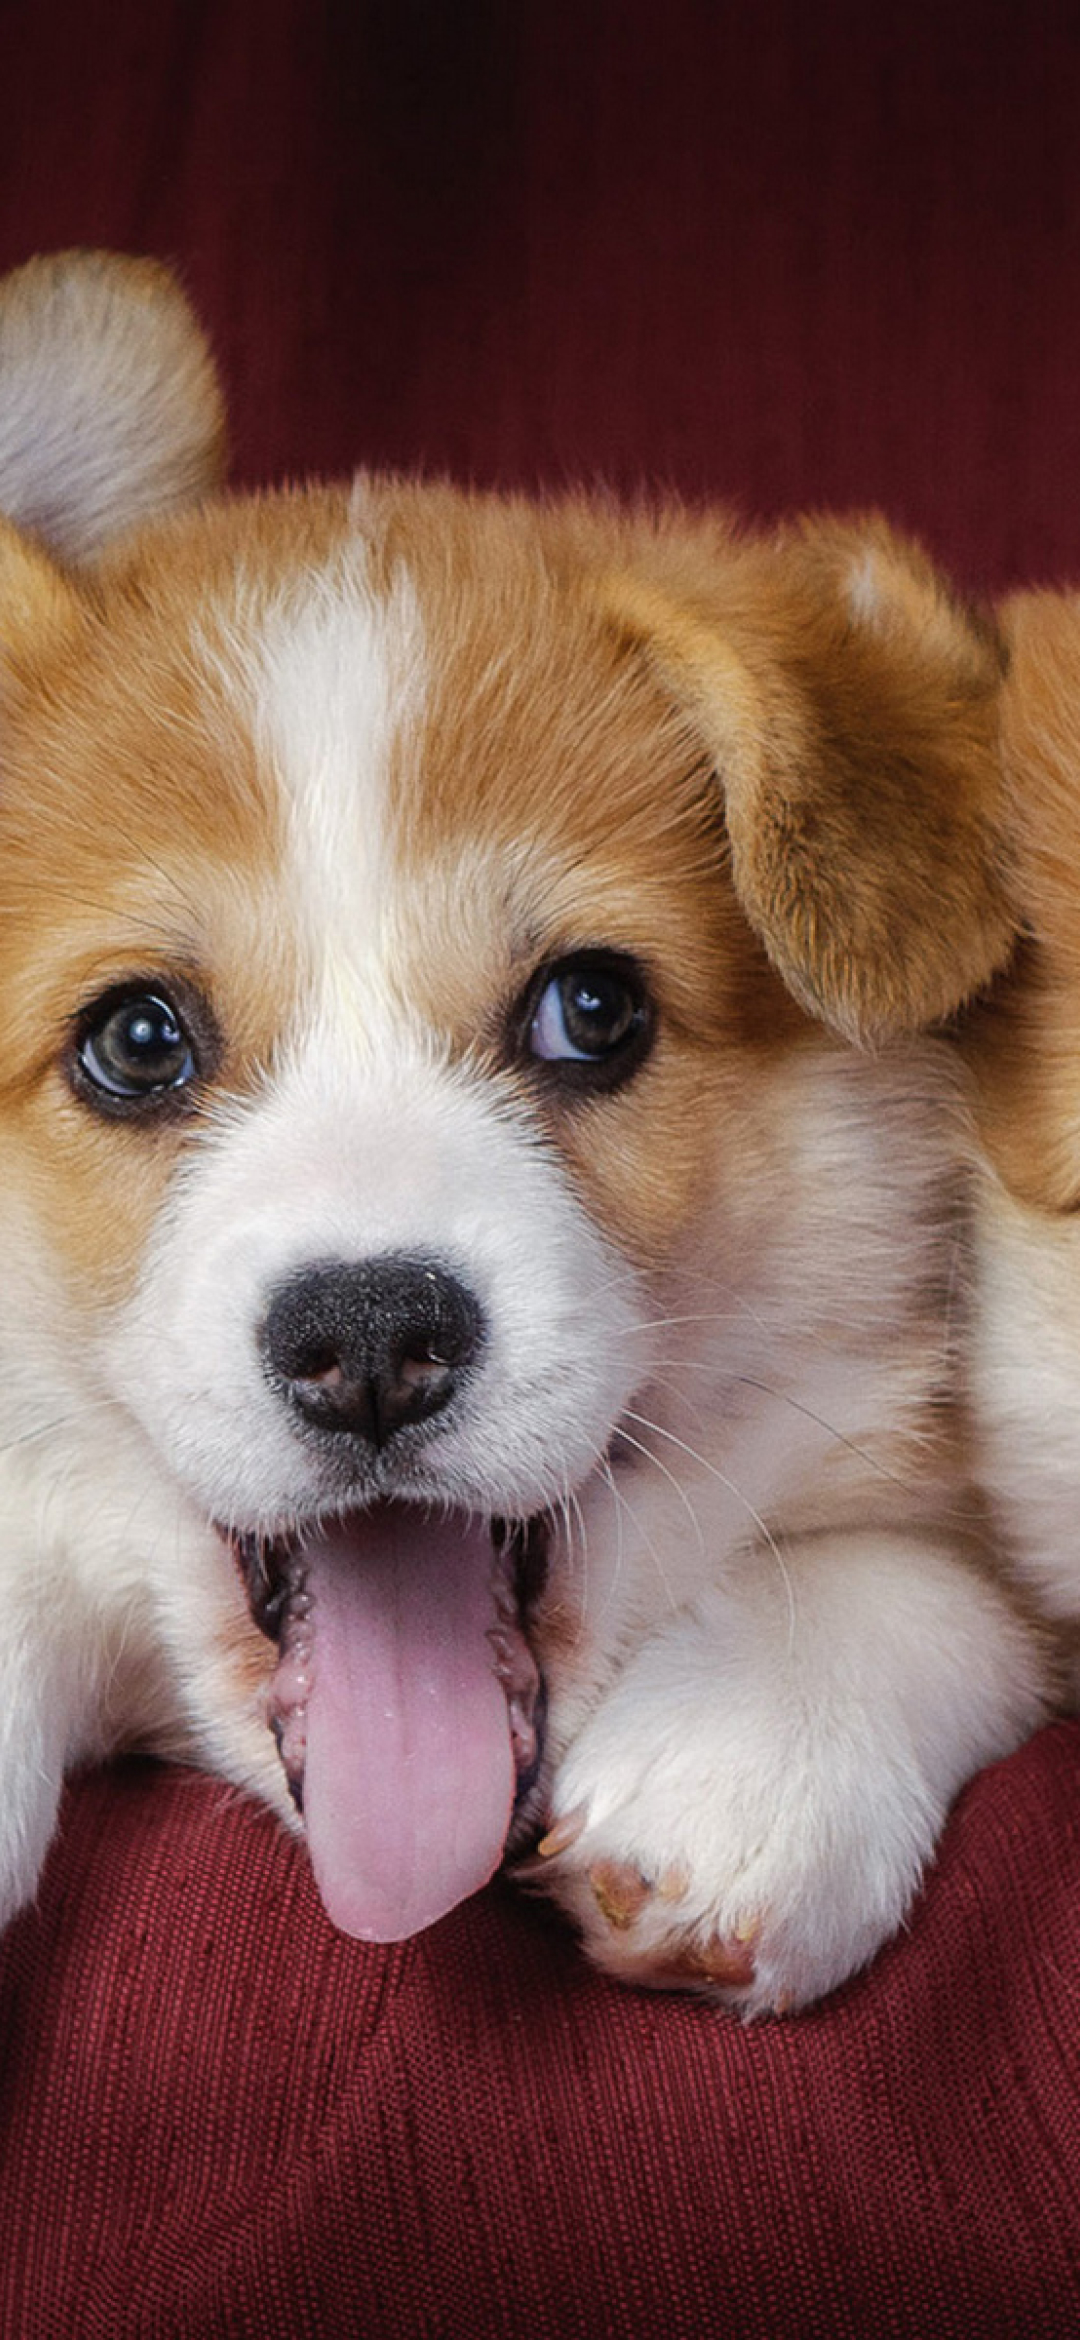 1080x2340 Welsh Corgi Puppies Dogs 1080x2340 Resolution Wallpaper Hd Animals 4k Wallpapers Images Photos And Background